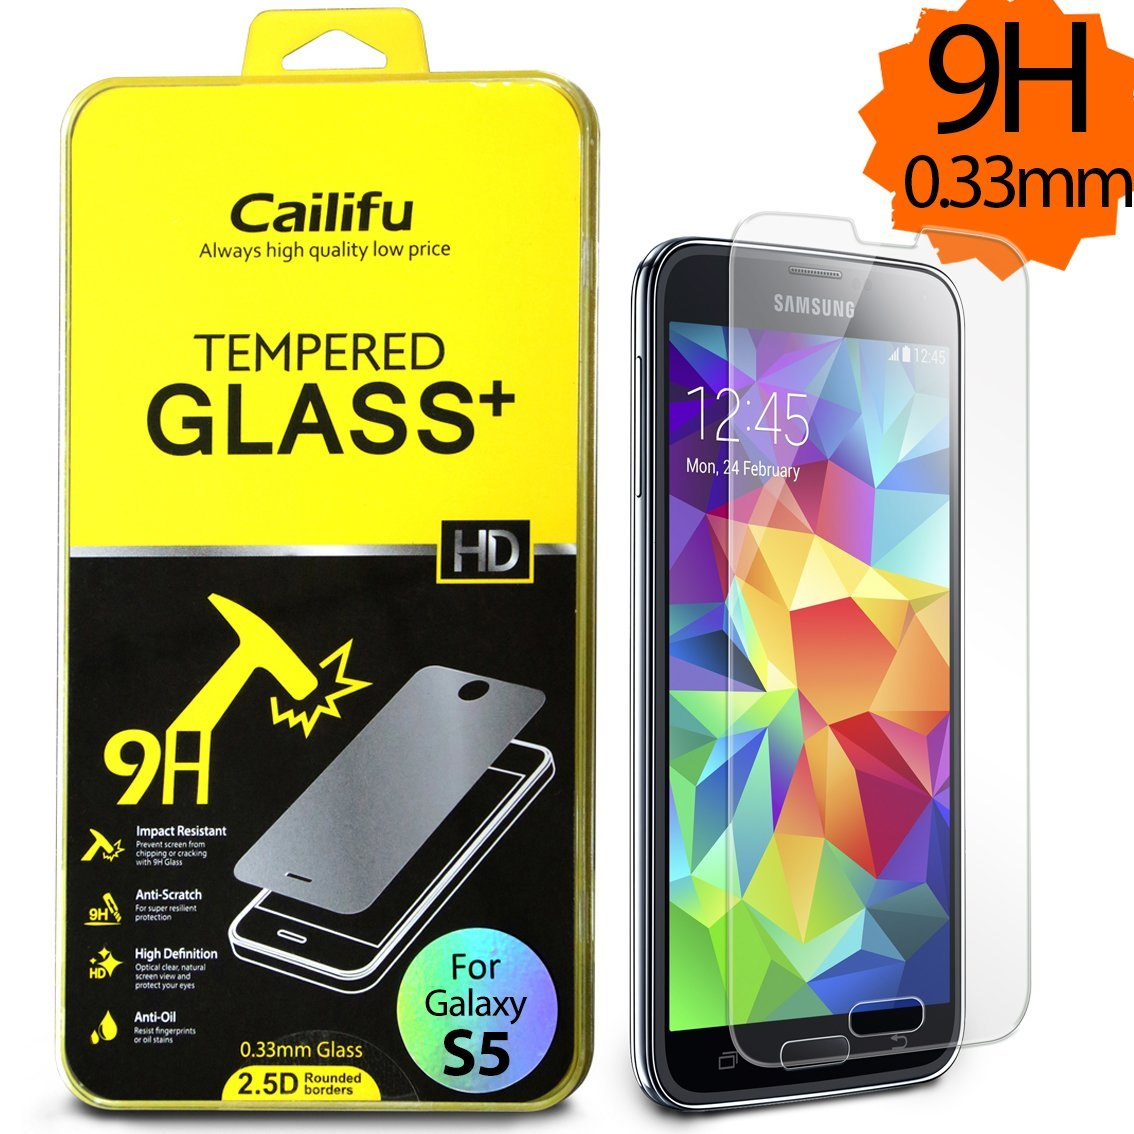 Cailifu [Tempered Glass] Samsung Galaxy S5 Highest Quality Premium High Definition Ultra Clear Screen protector with Lifetime Replacement Warranty [1-Pack] - Retail Packaging 2014 (0.33mm,2.6D Rounded Edges)